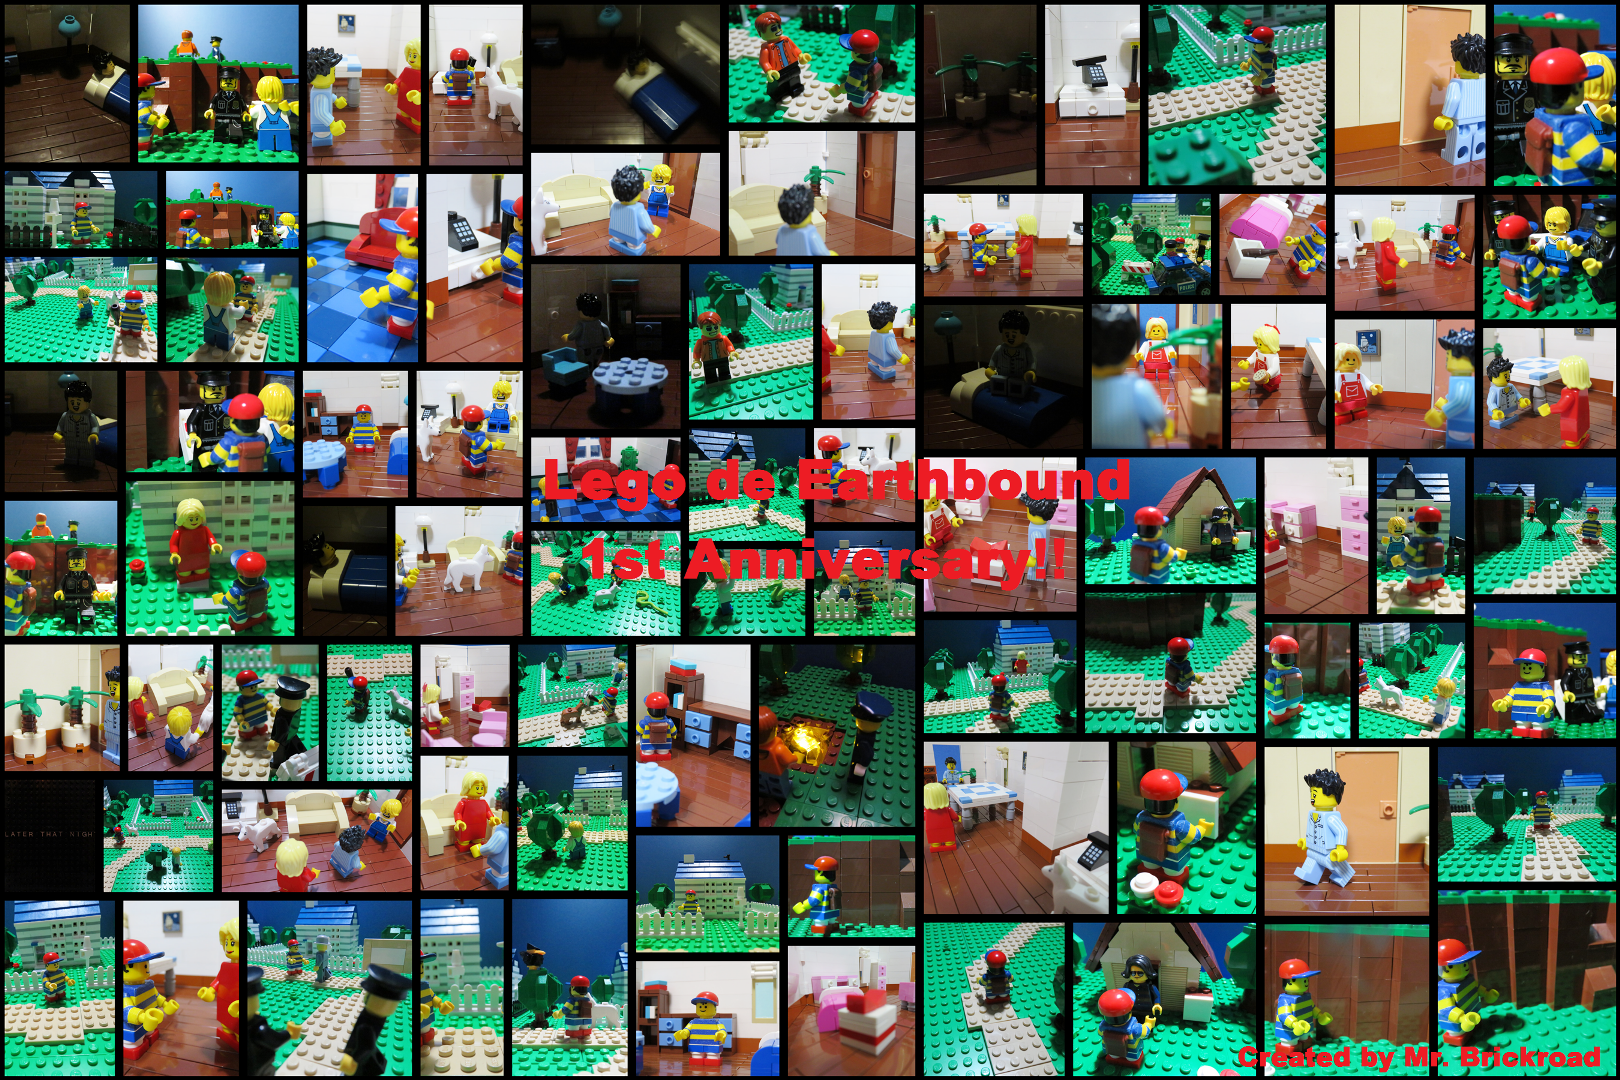 Lego_de_Earthbound_1st_Anniversary_01_mlw2.png